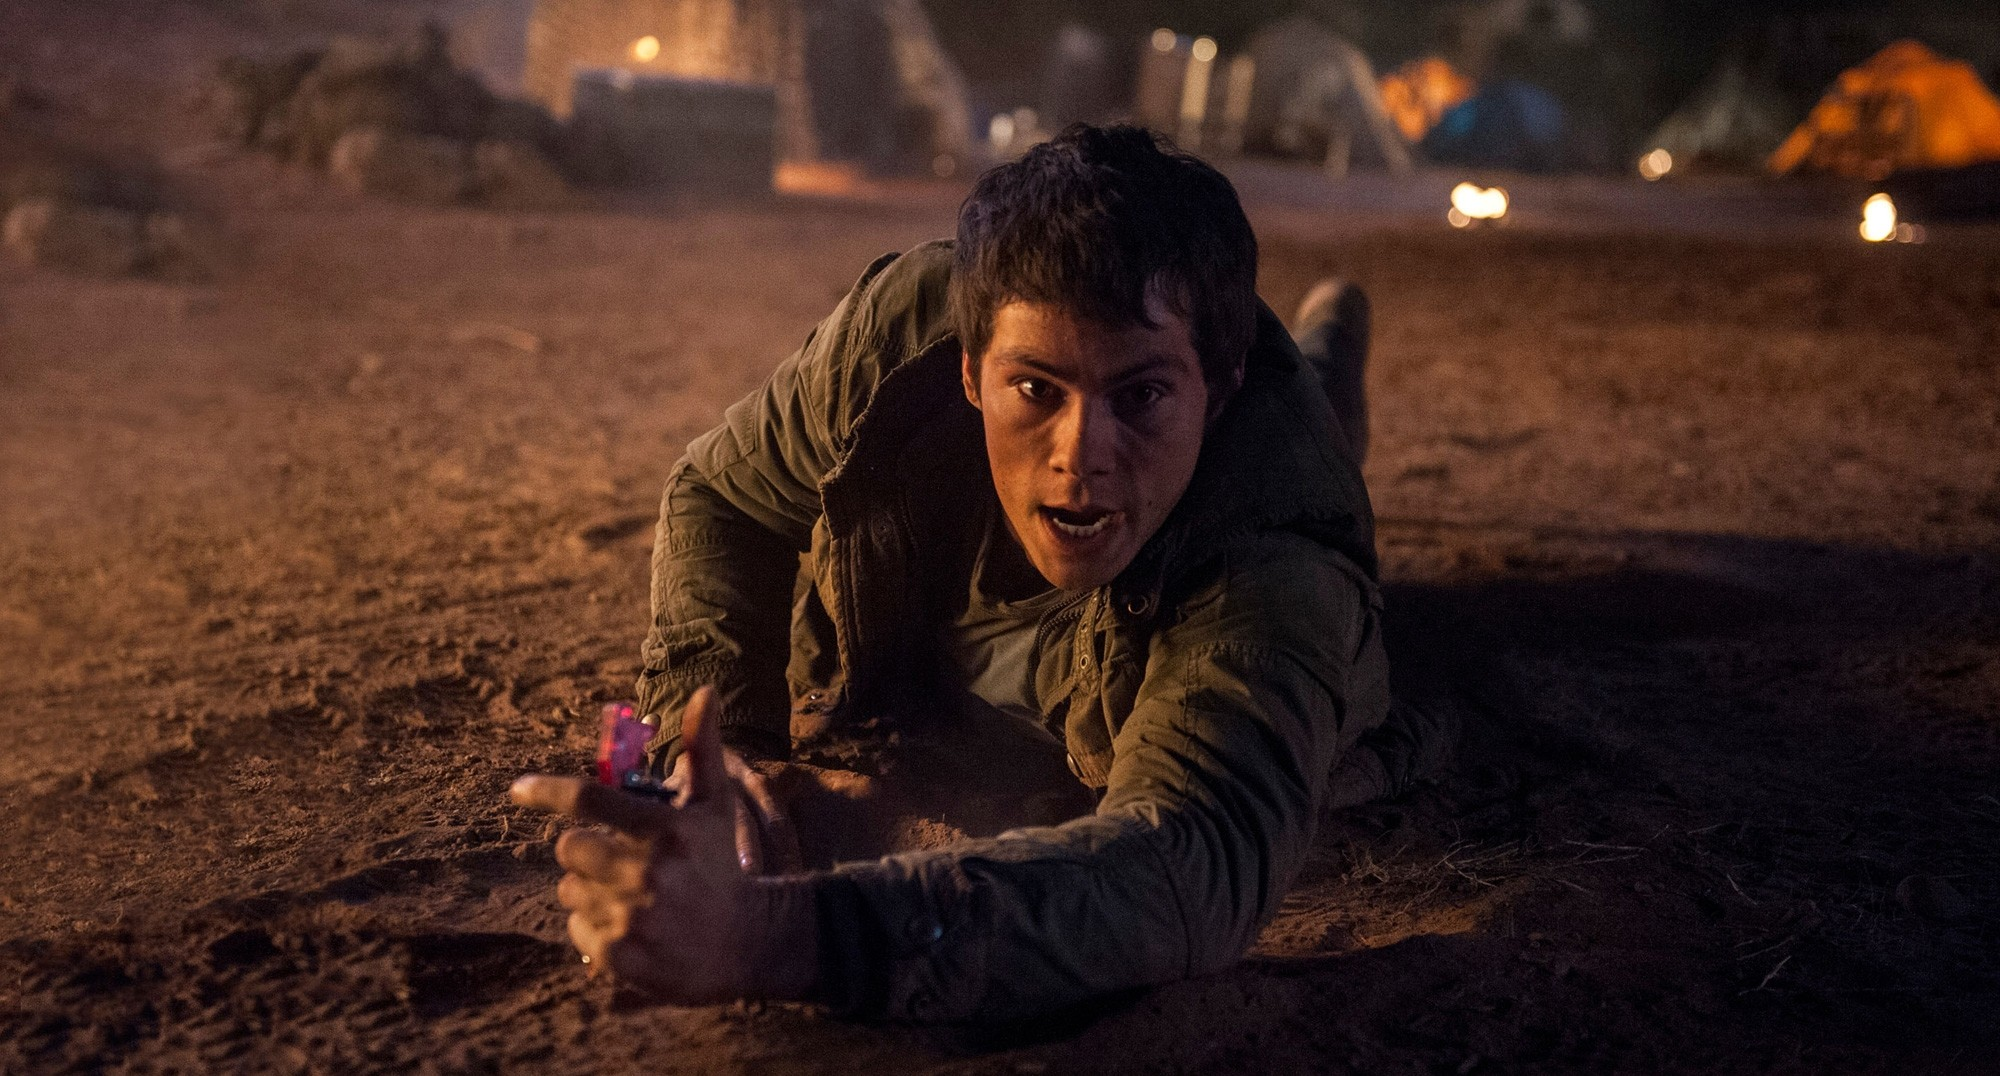 scorchtrials-6-gallery-image.jpg